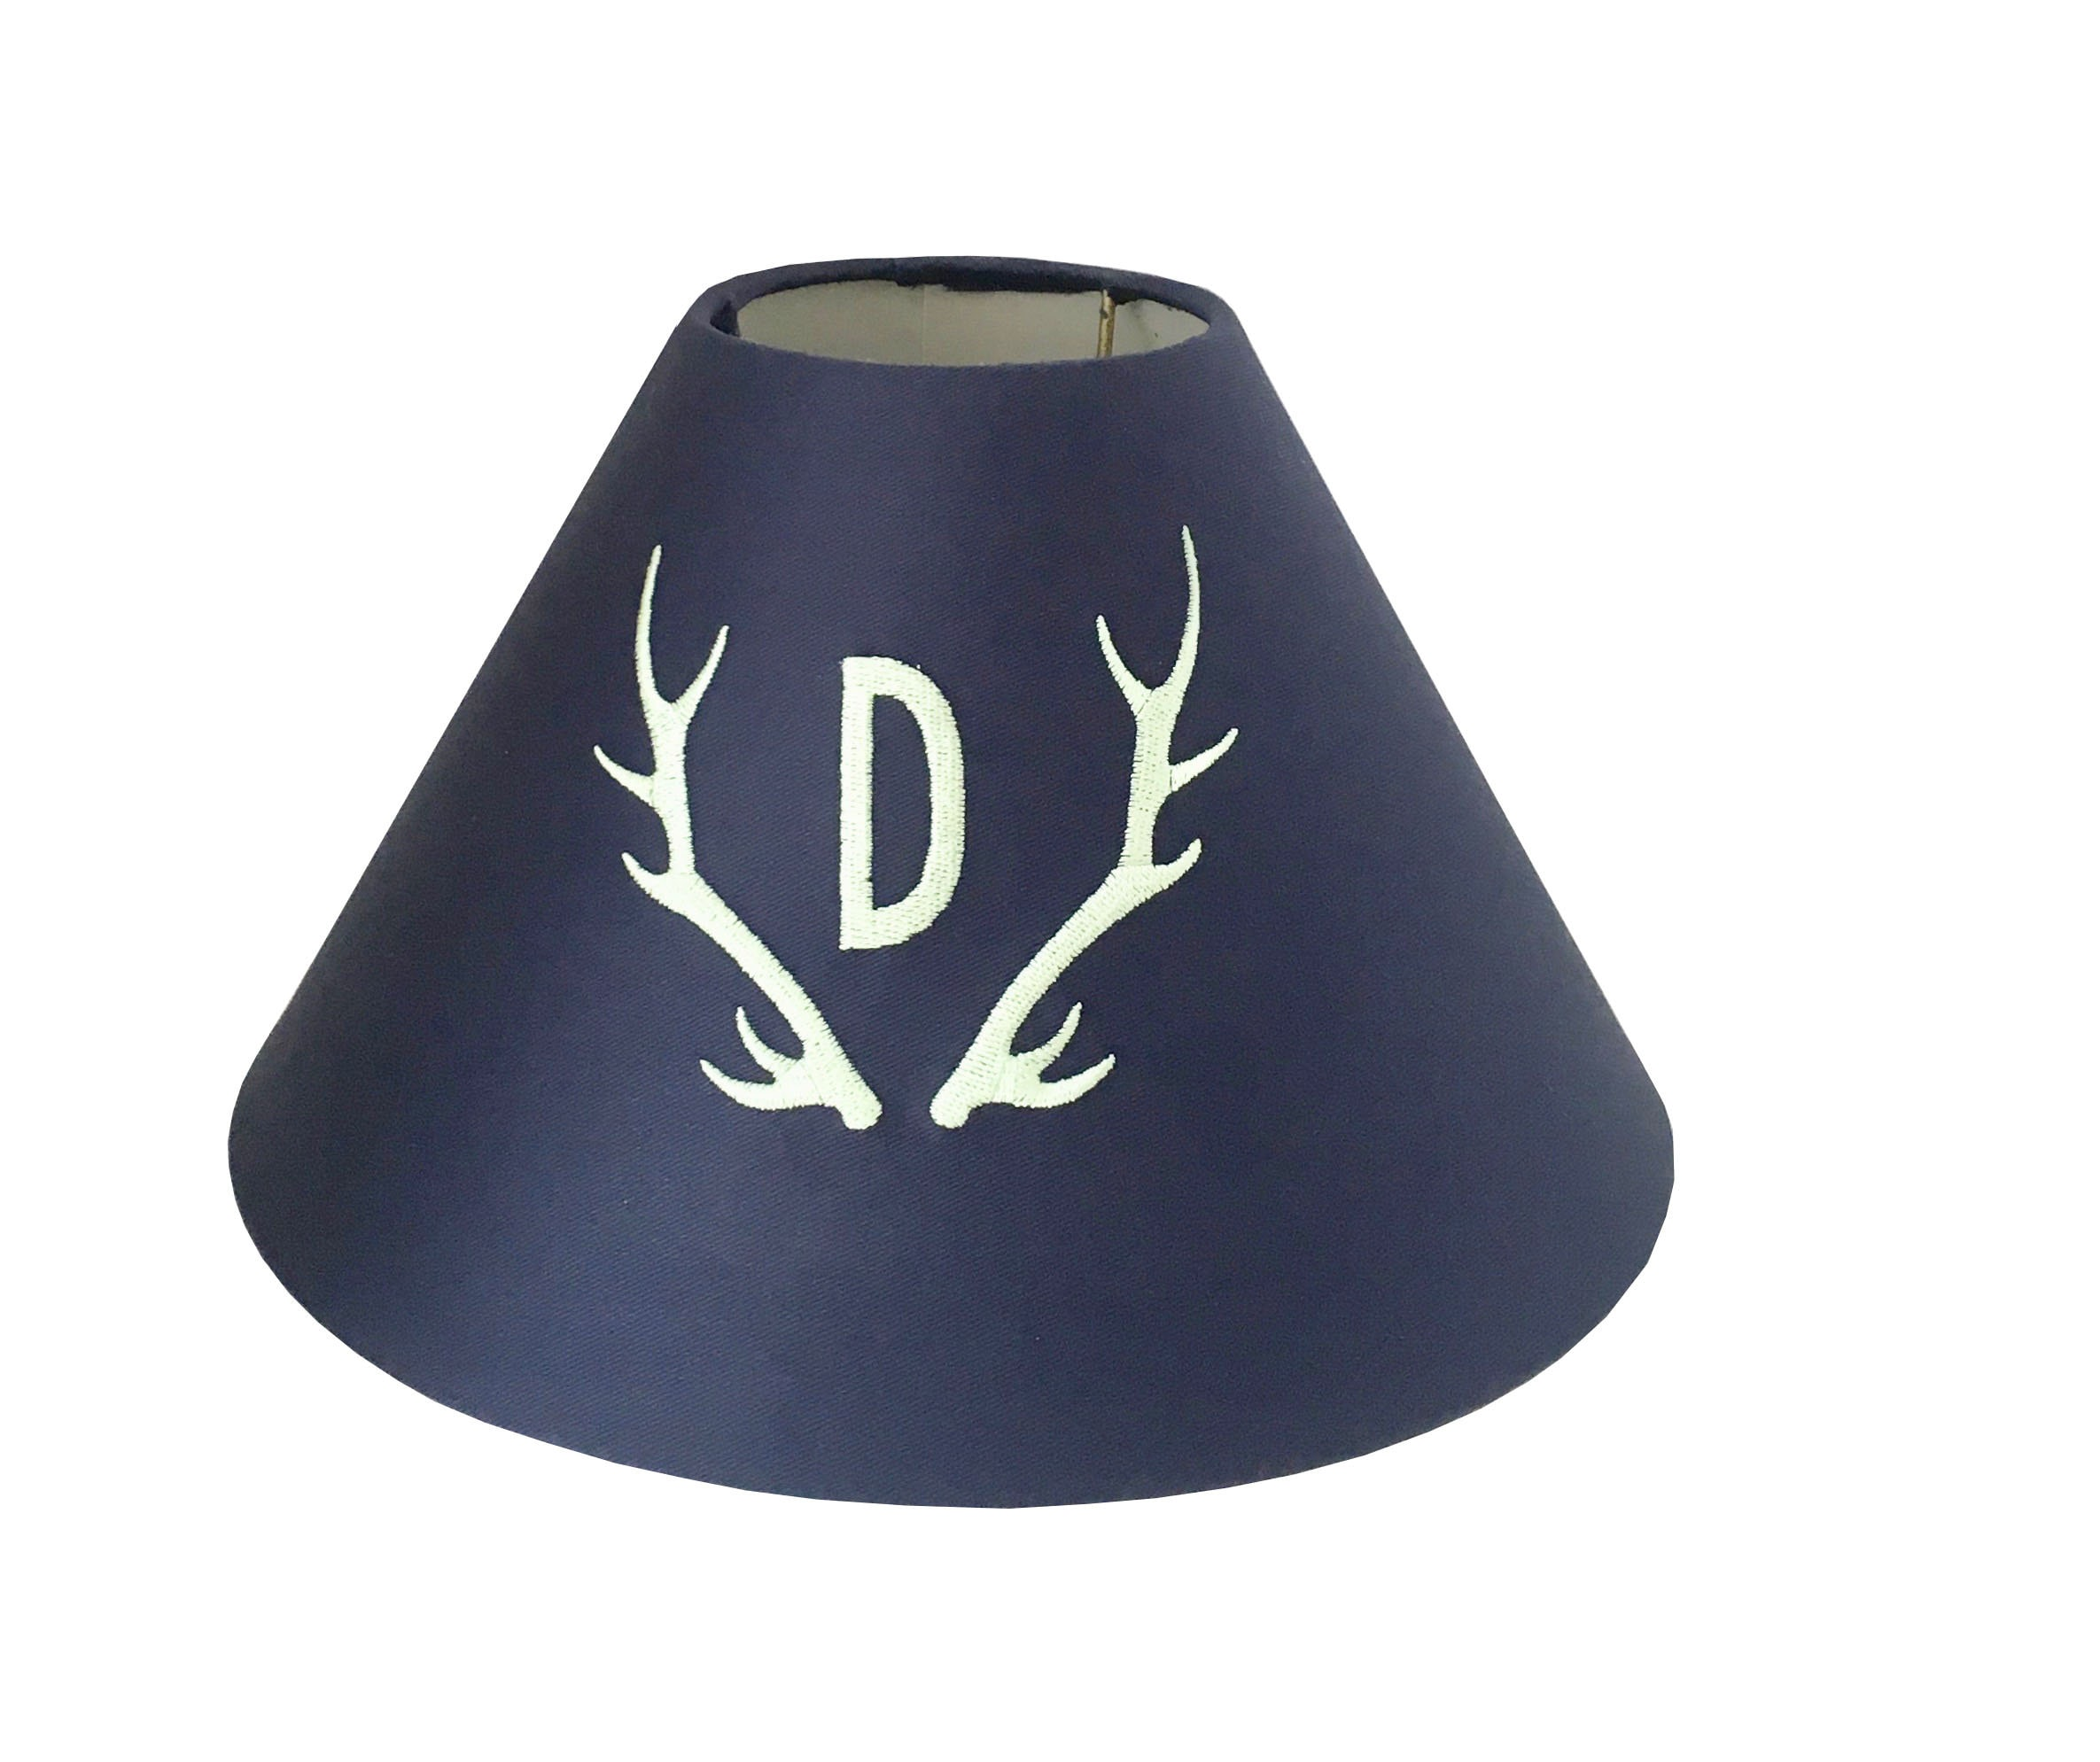 Mint antler monogrammed lampshade boys room nursery woodland mint antler monogrammed lampshade boys room nursery woodland lampshade table lamp monogrammed lampshadeyour choice of monogram color mozeypictures Image collections